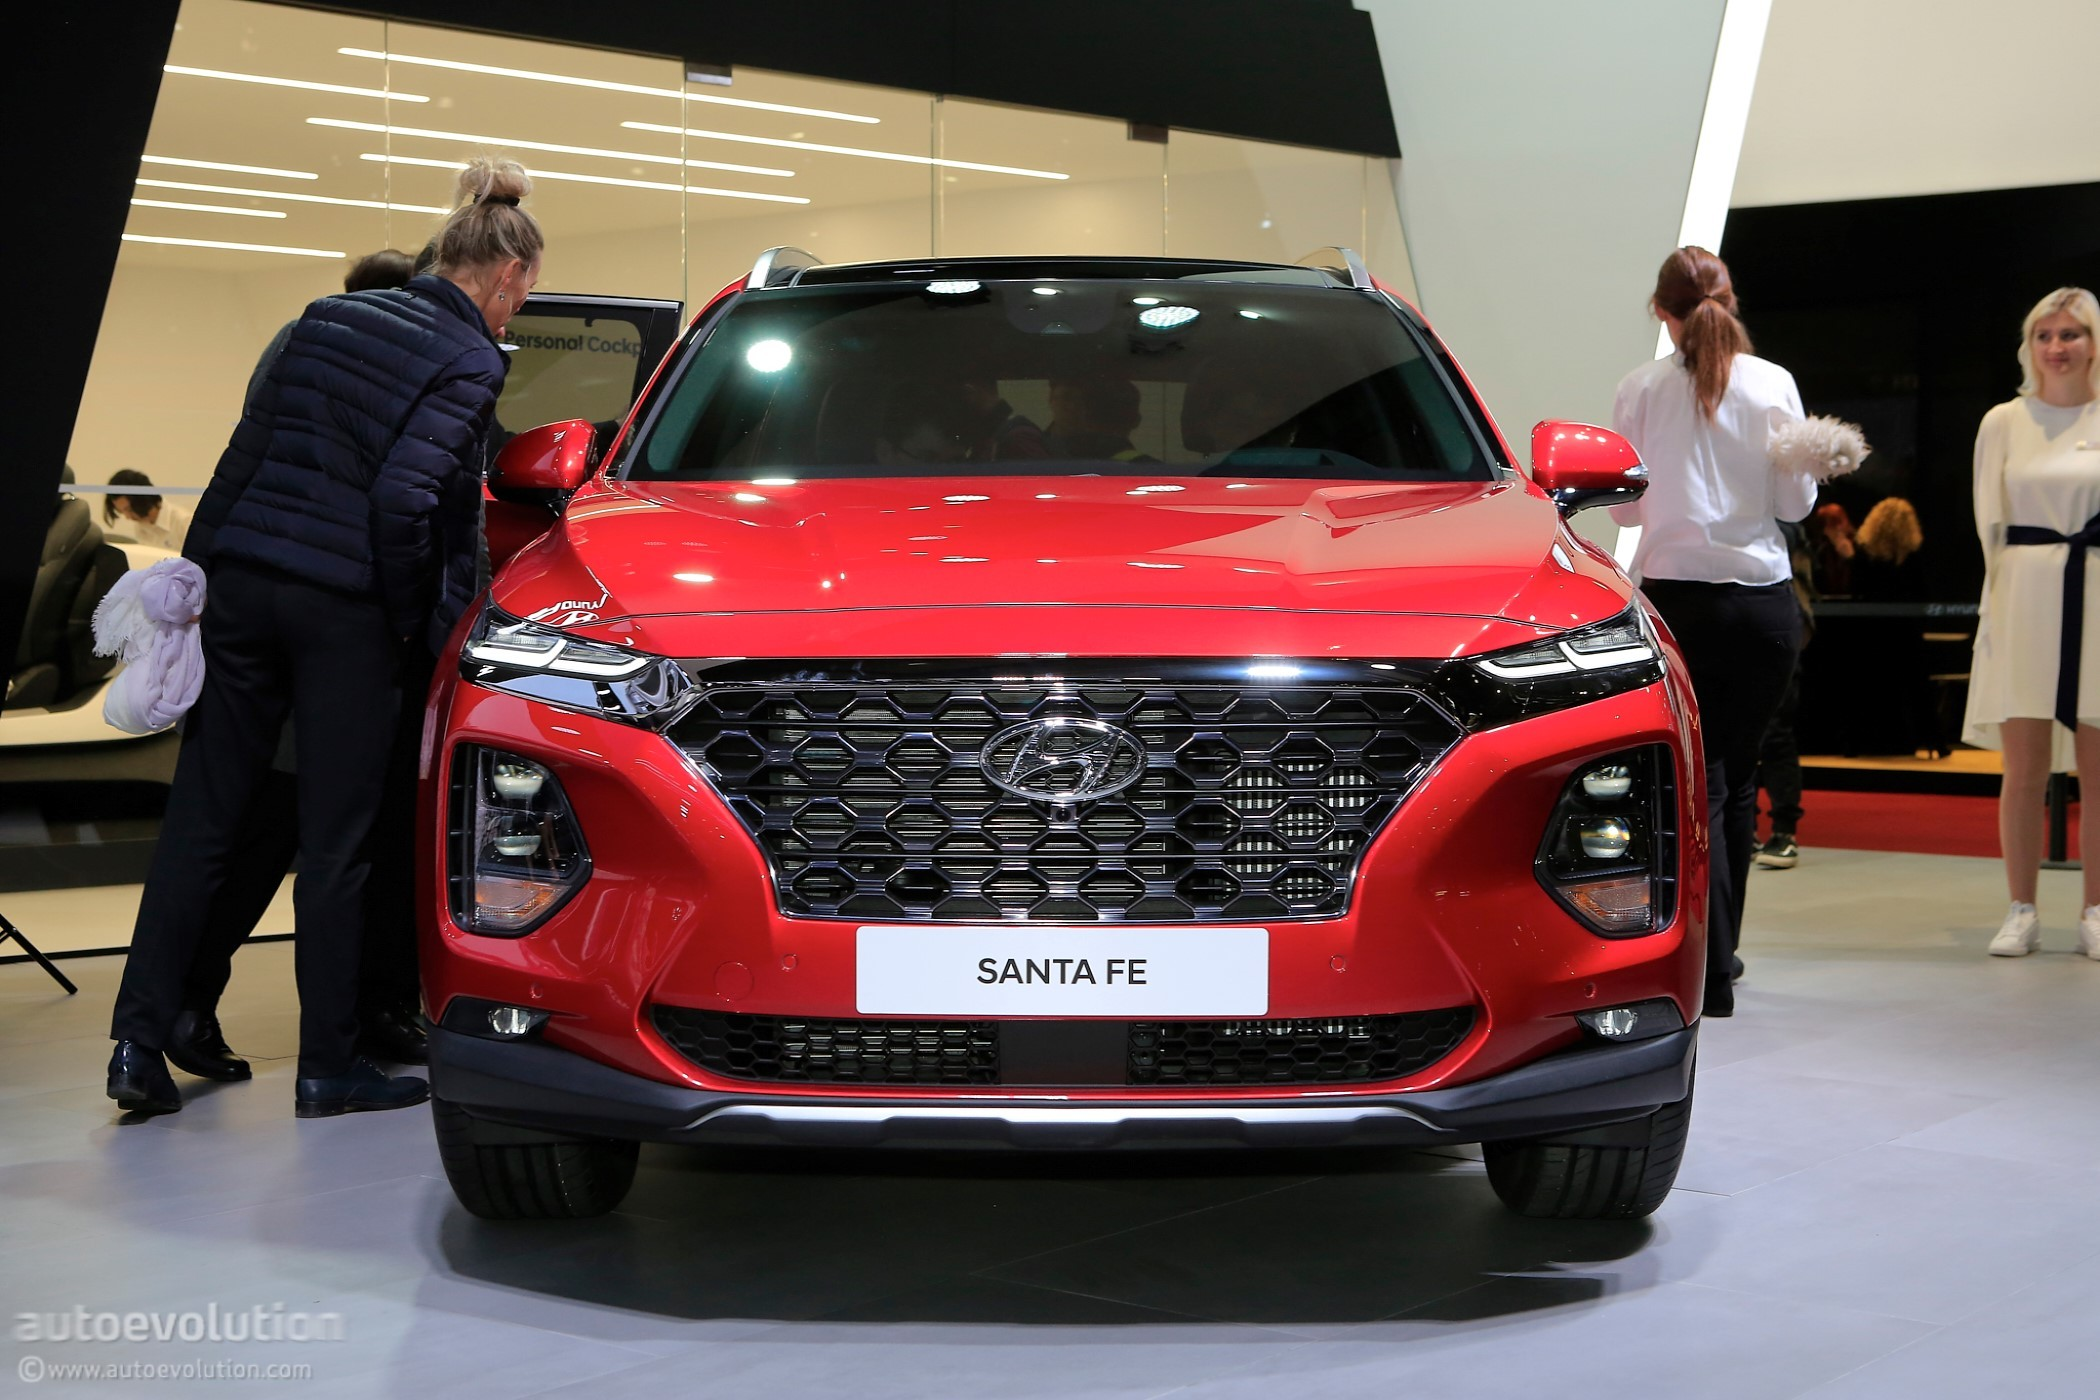 Hyundai Bringing New Santa Fe Tucson Facelift And Kona EV